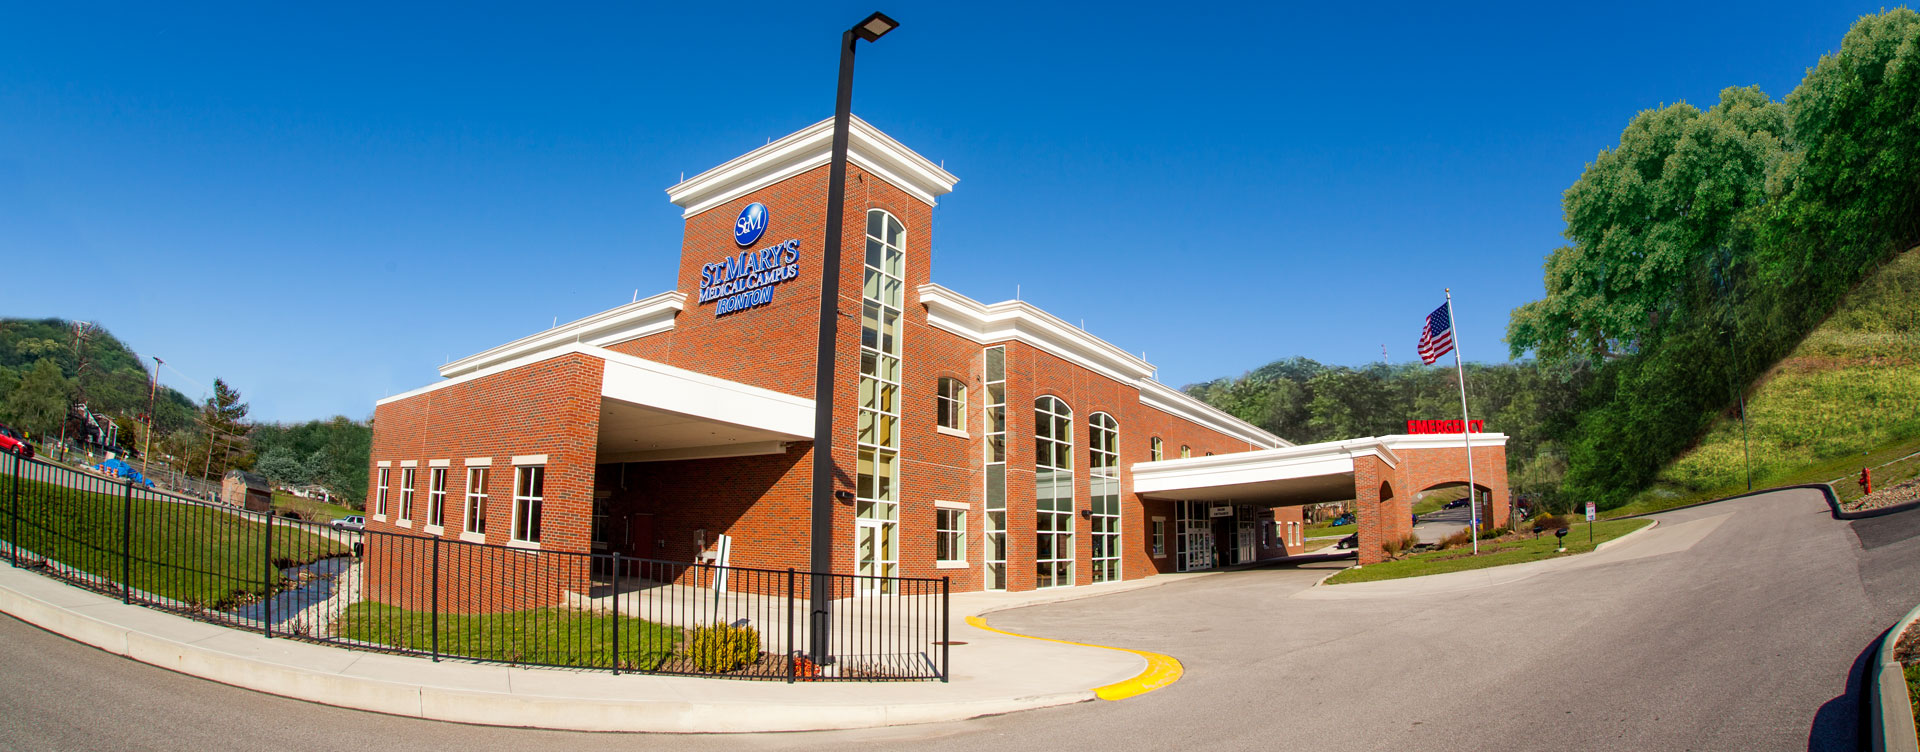 Ironton Family Medical Center